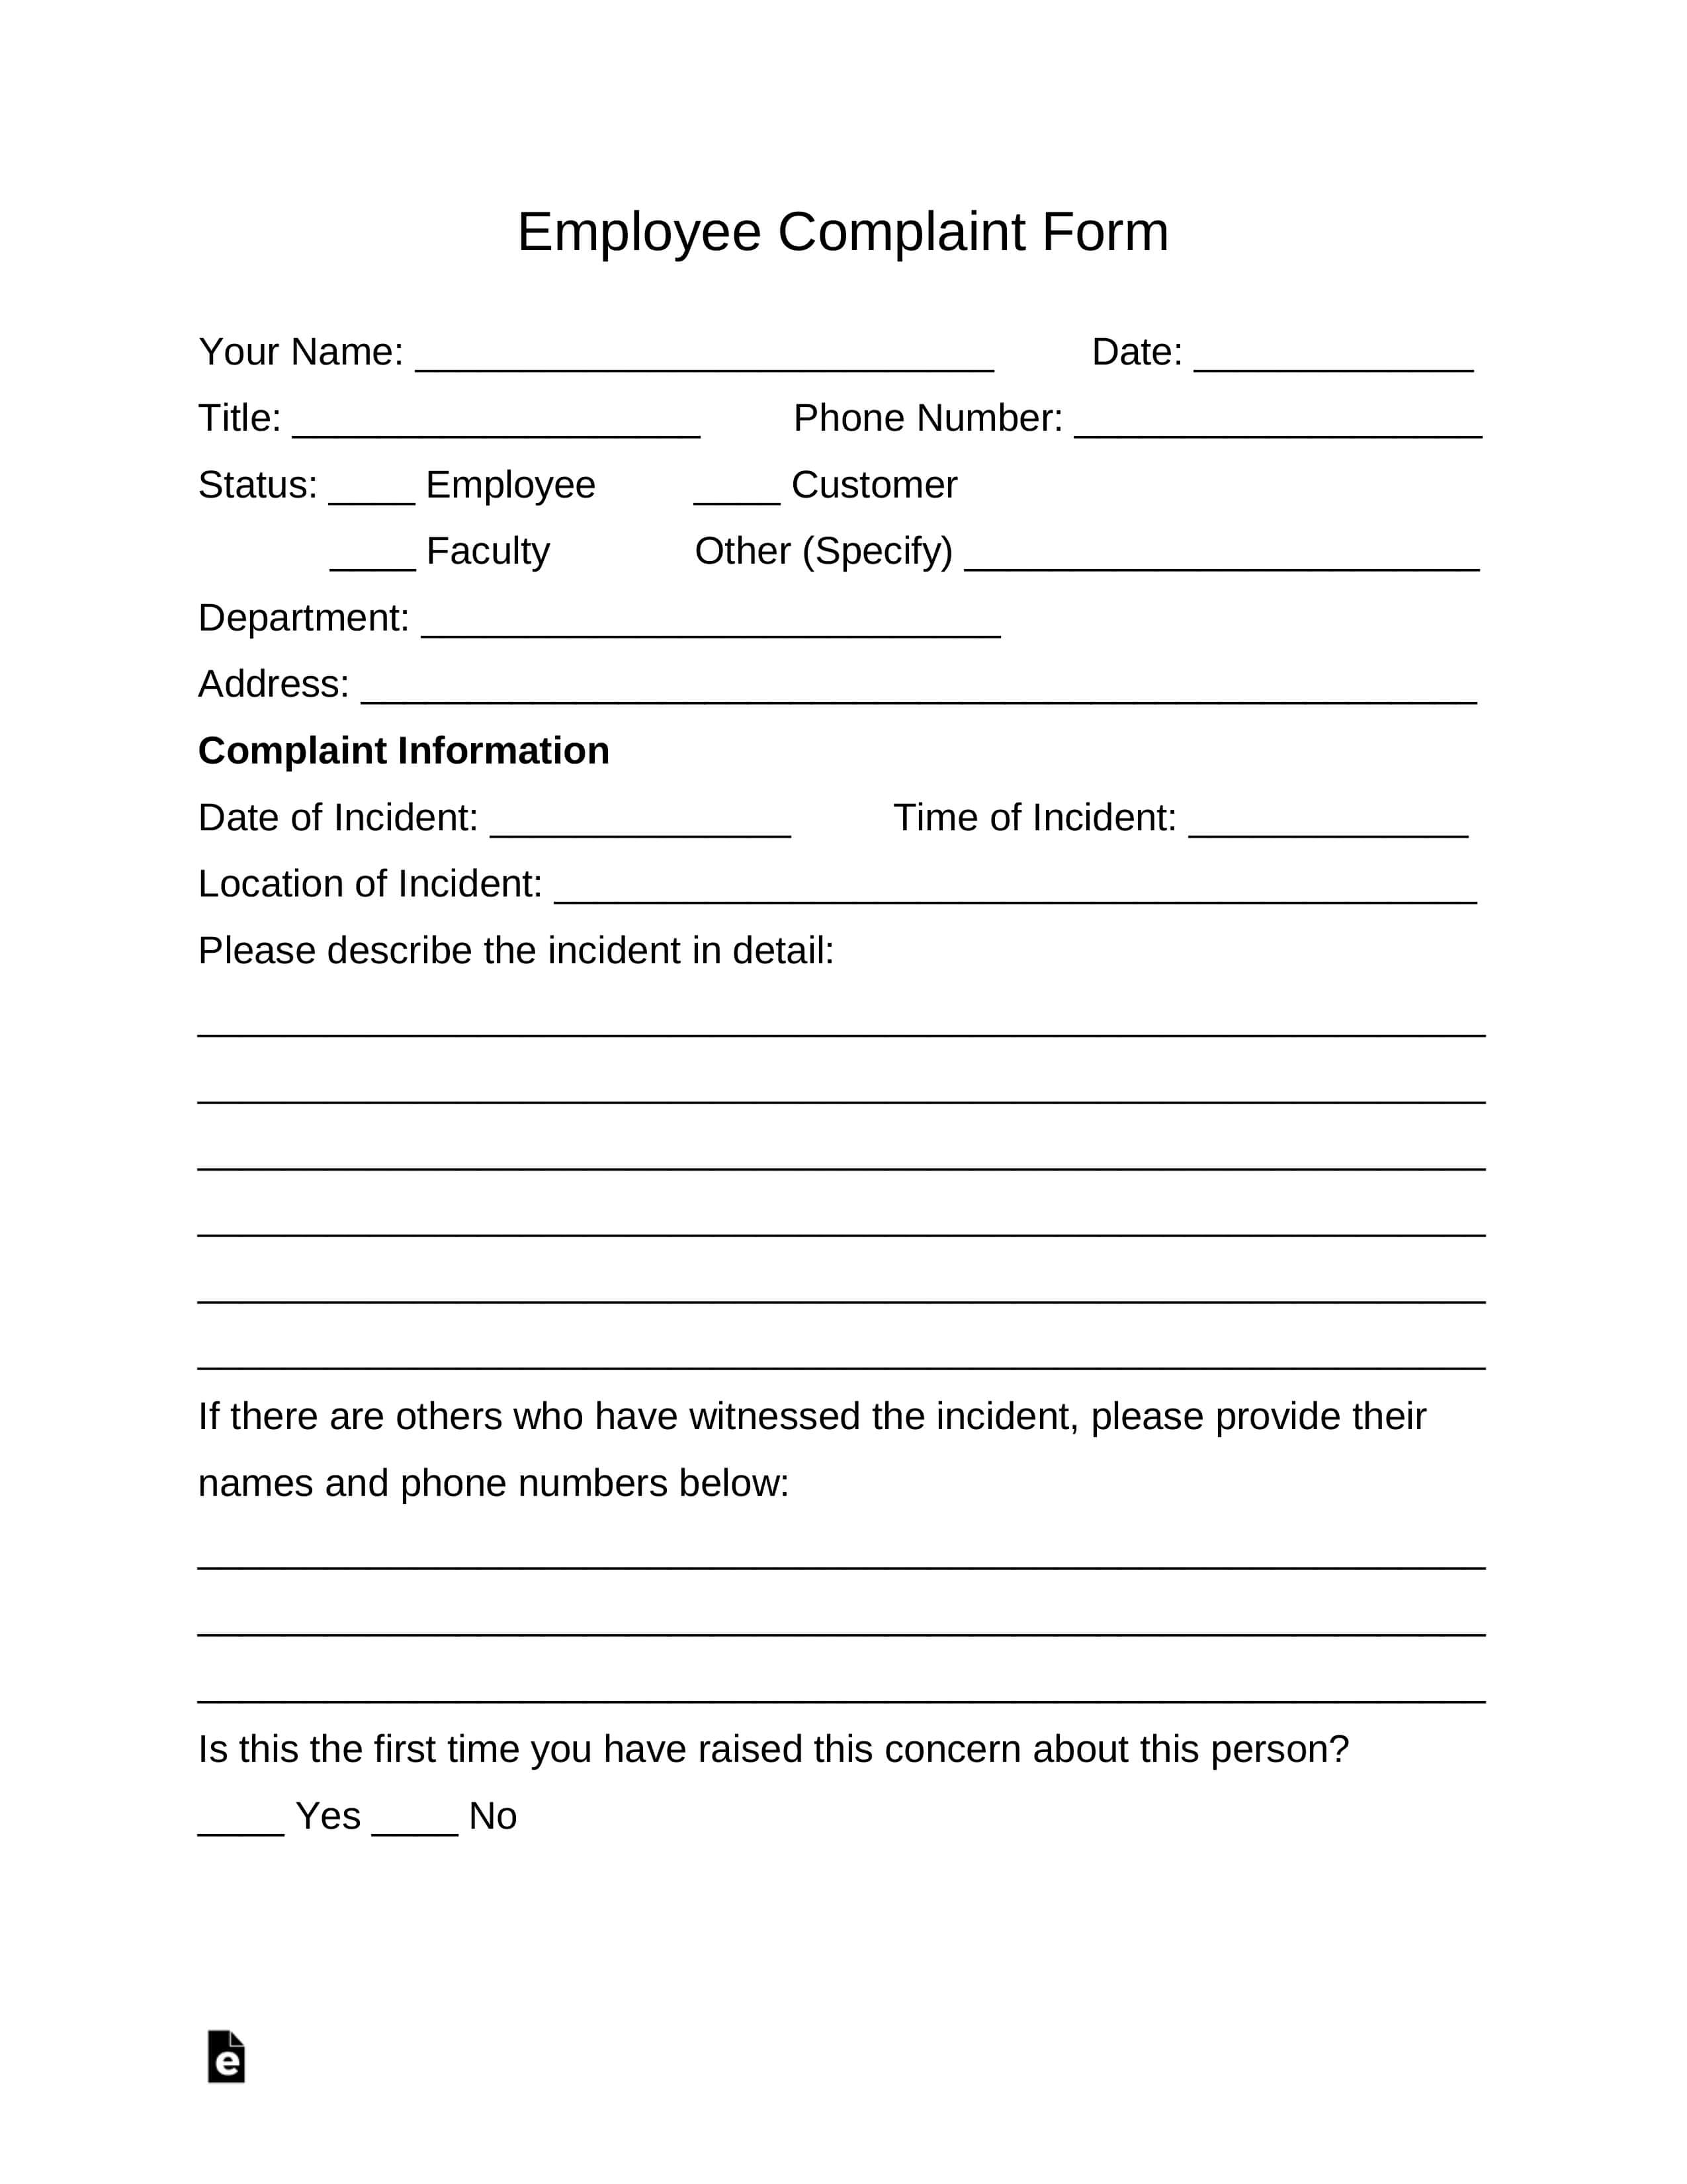 Free Employee Complaint Form - Pdf | Word | Eforms – Free intended for Word Employee Suggestion Form Template